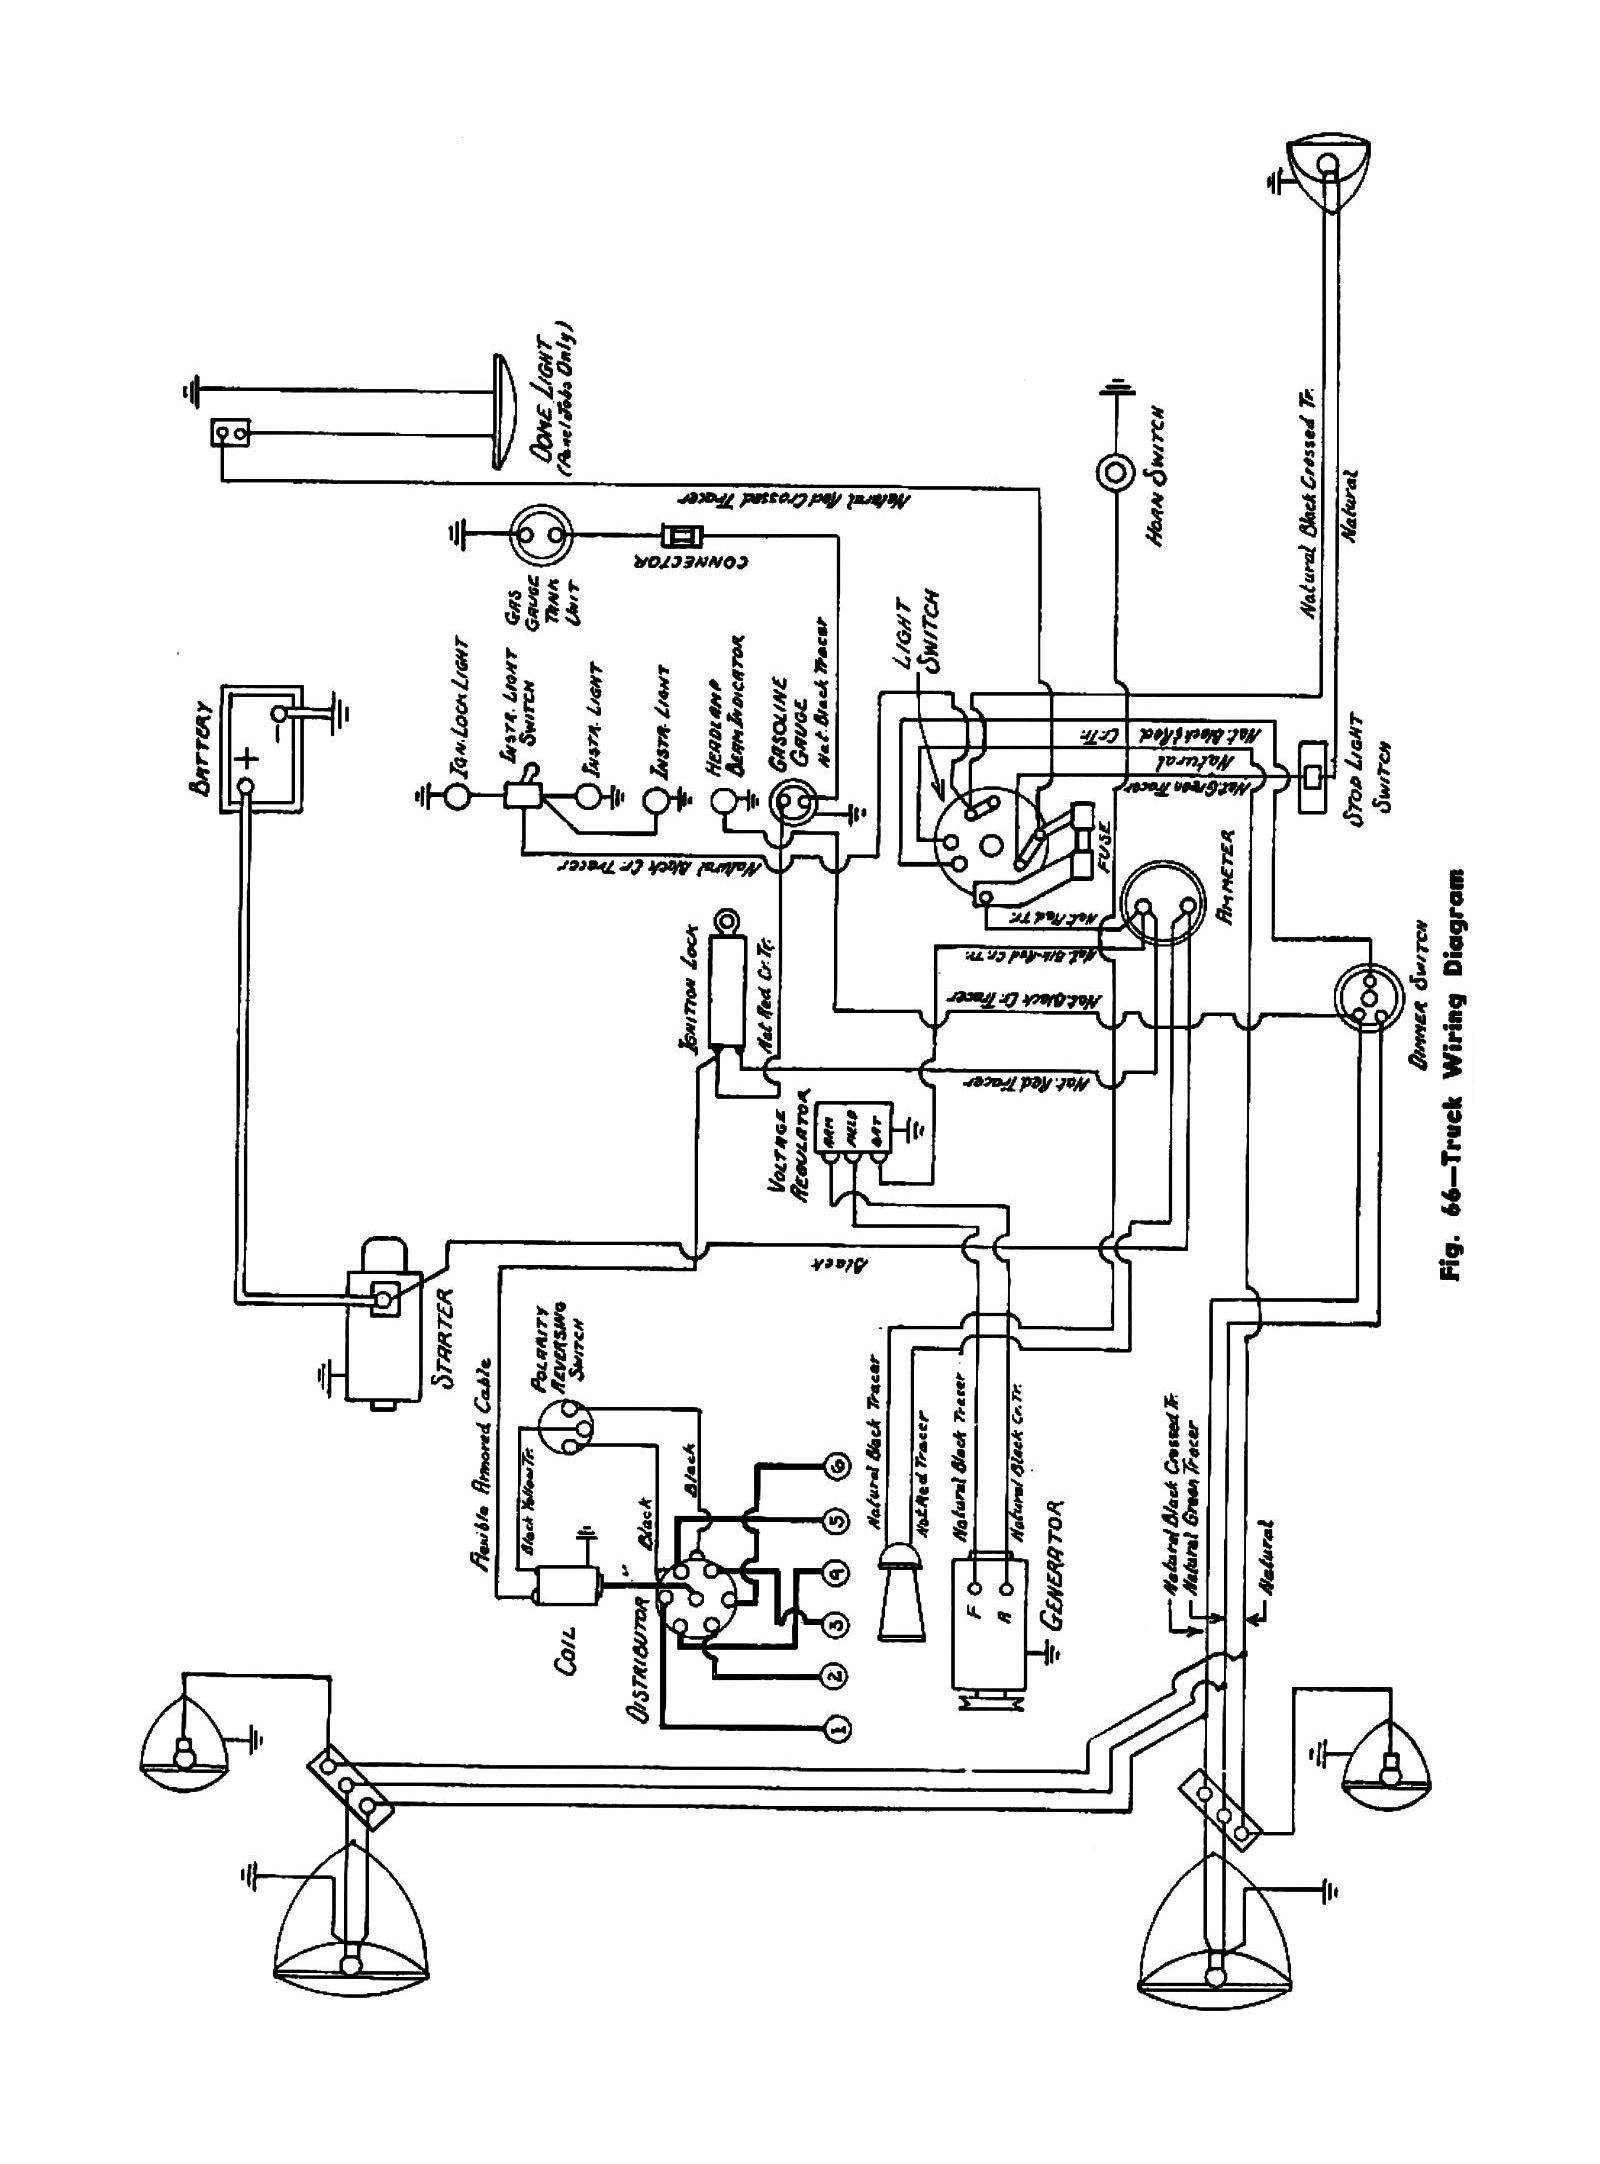 looking for a wiring schematic for a 1947-48 only of a ... 61 chevy truck wiring diagram 1932 chevy truck wiring diagram schematic